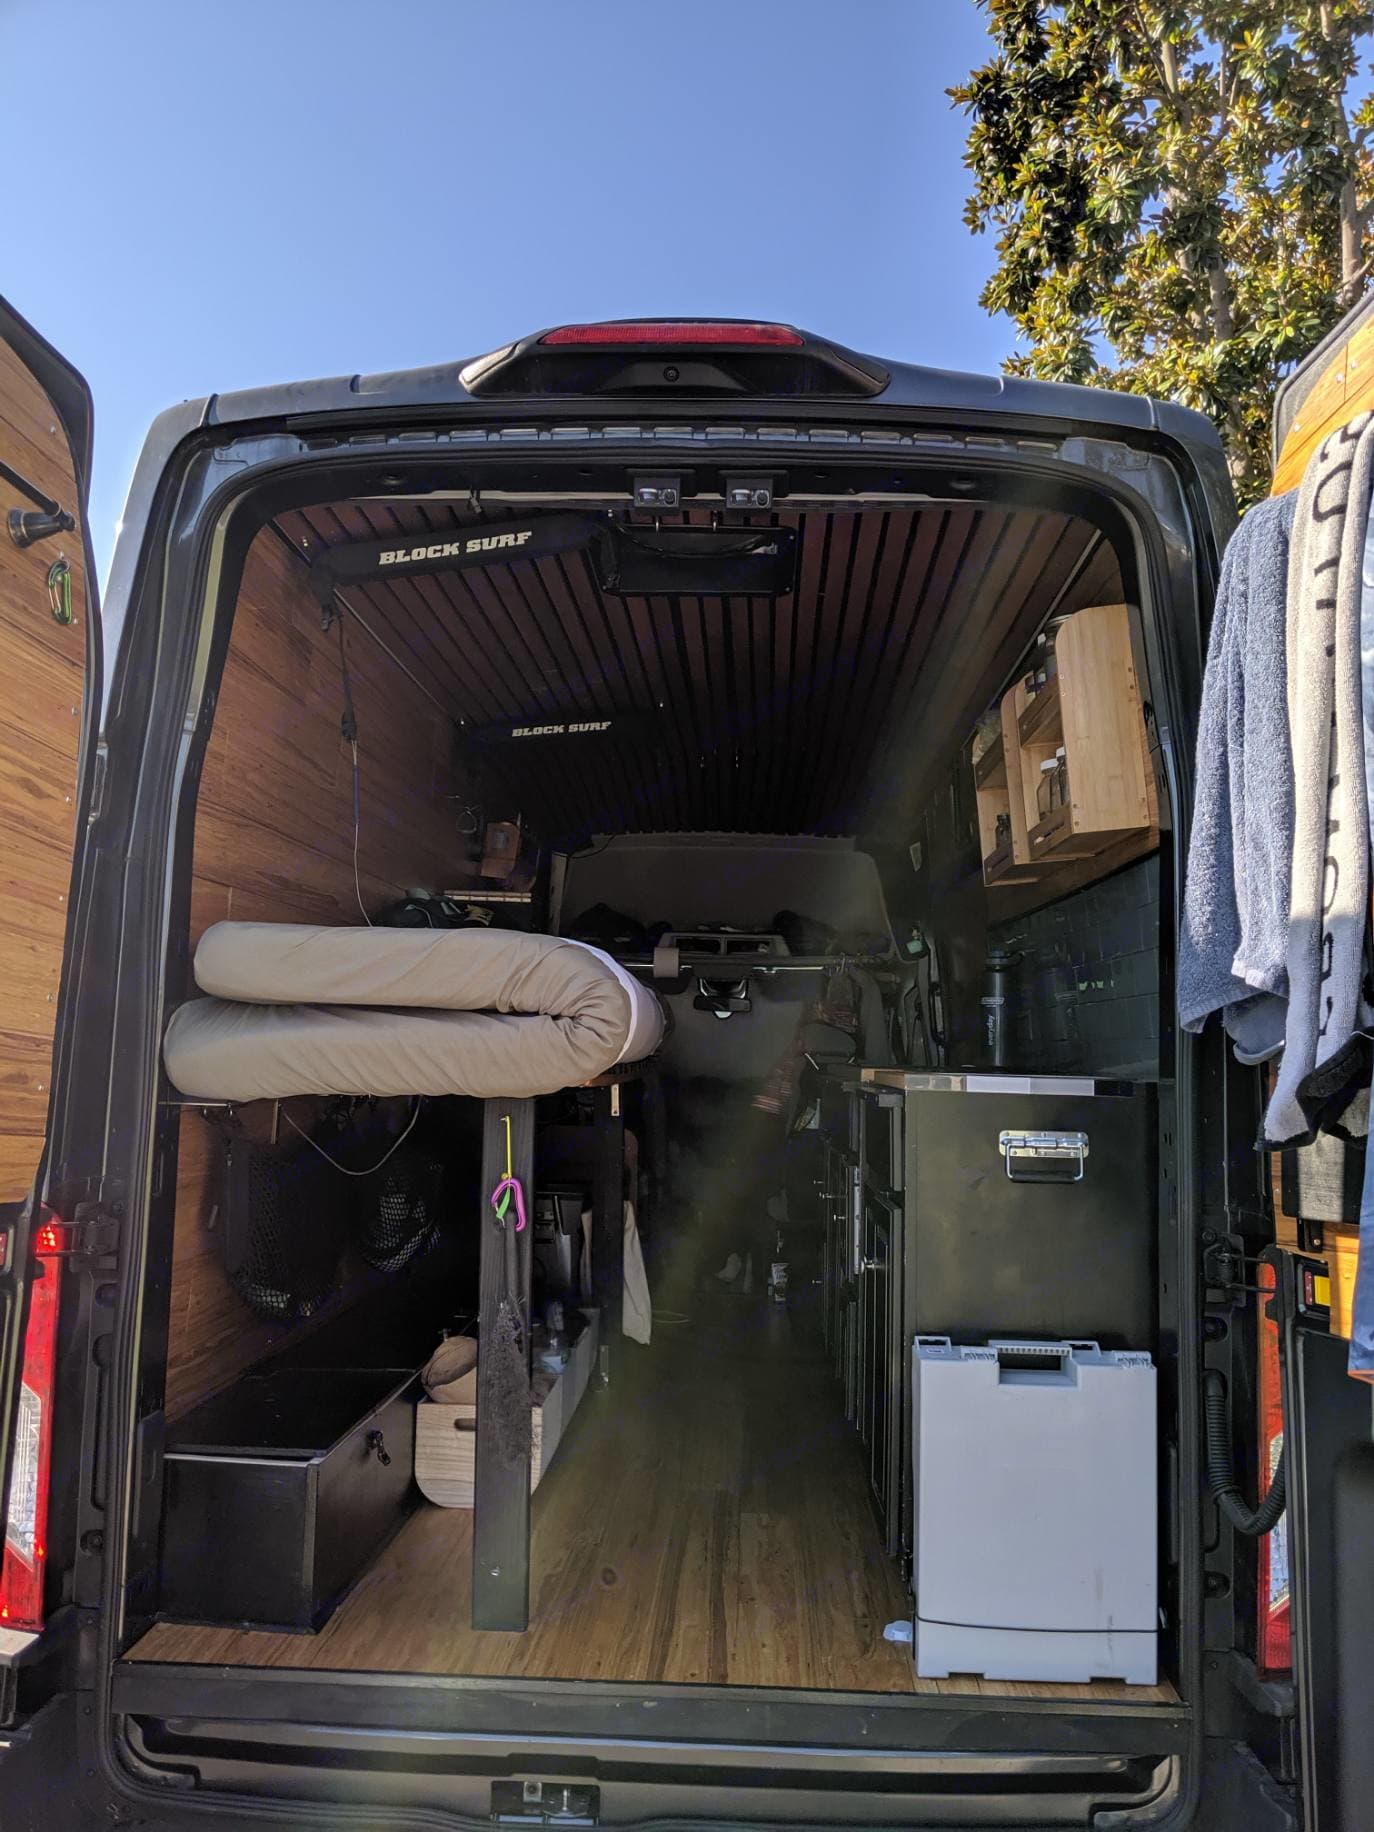 There's room for all your gear, even 2 surfboards!. Ford Transit 2018